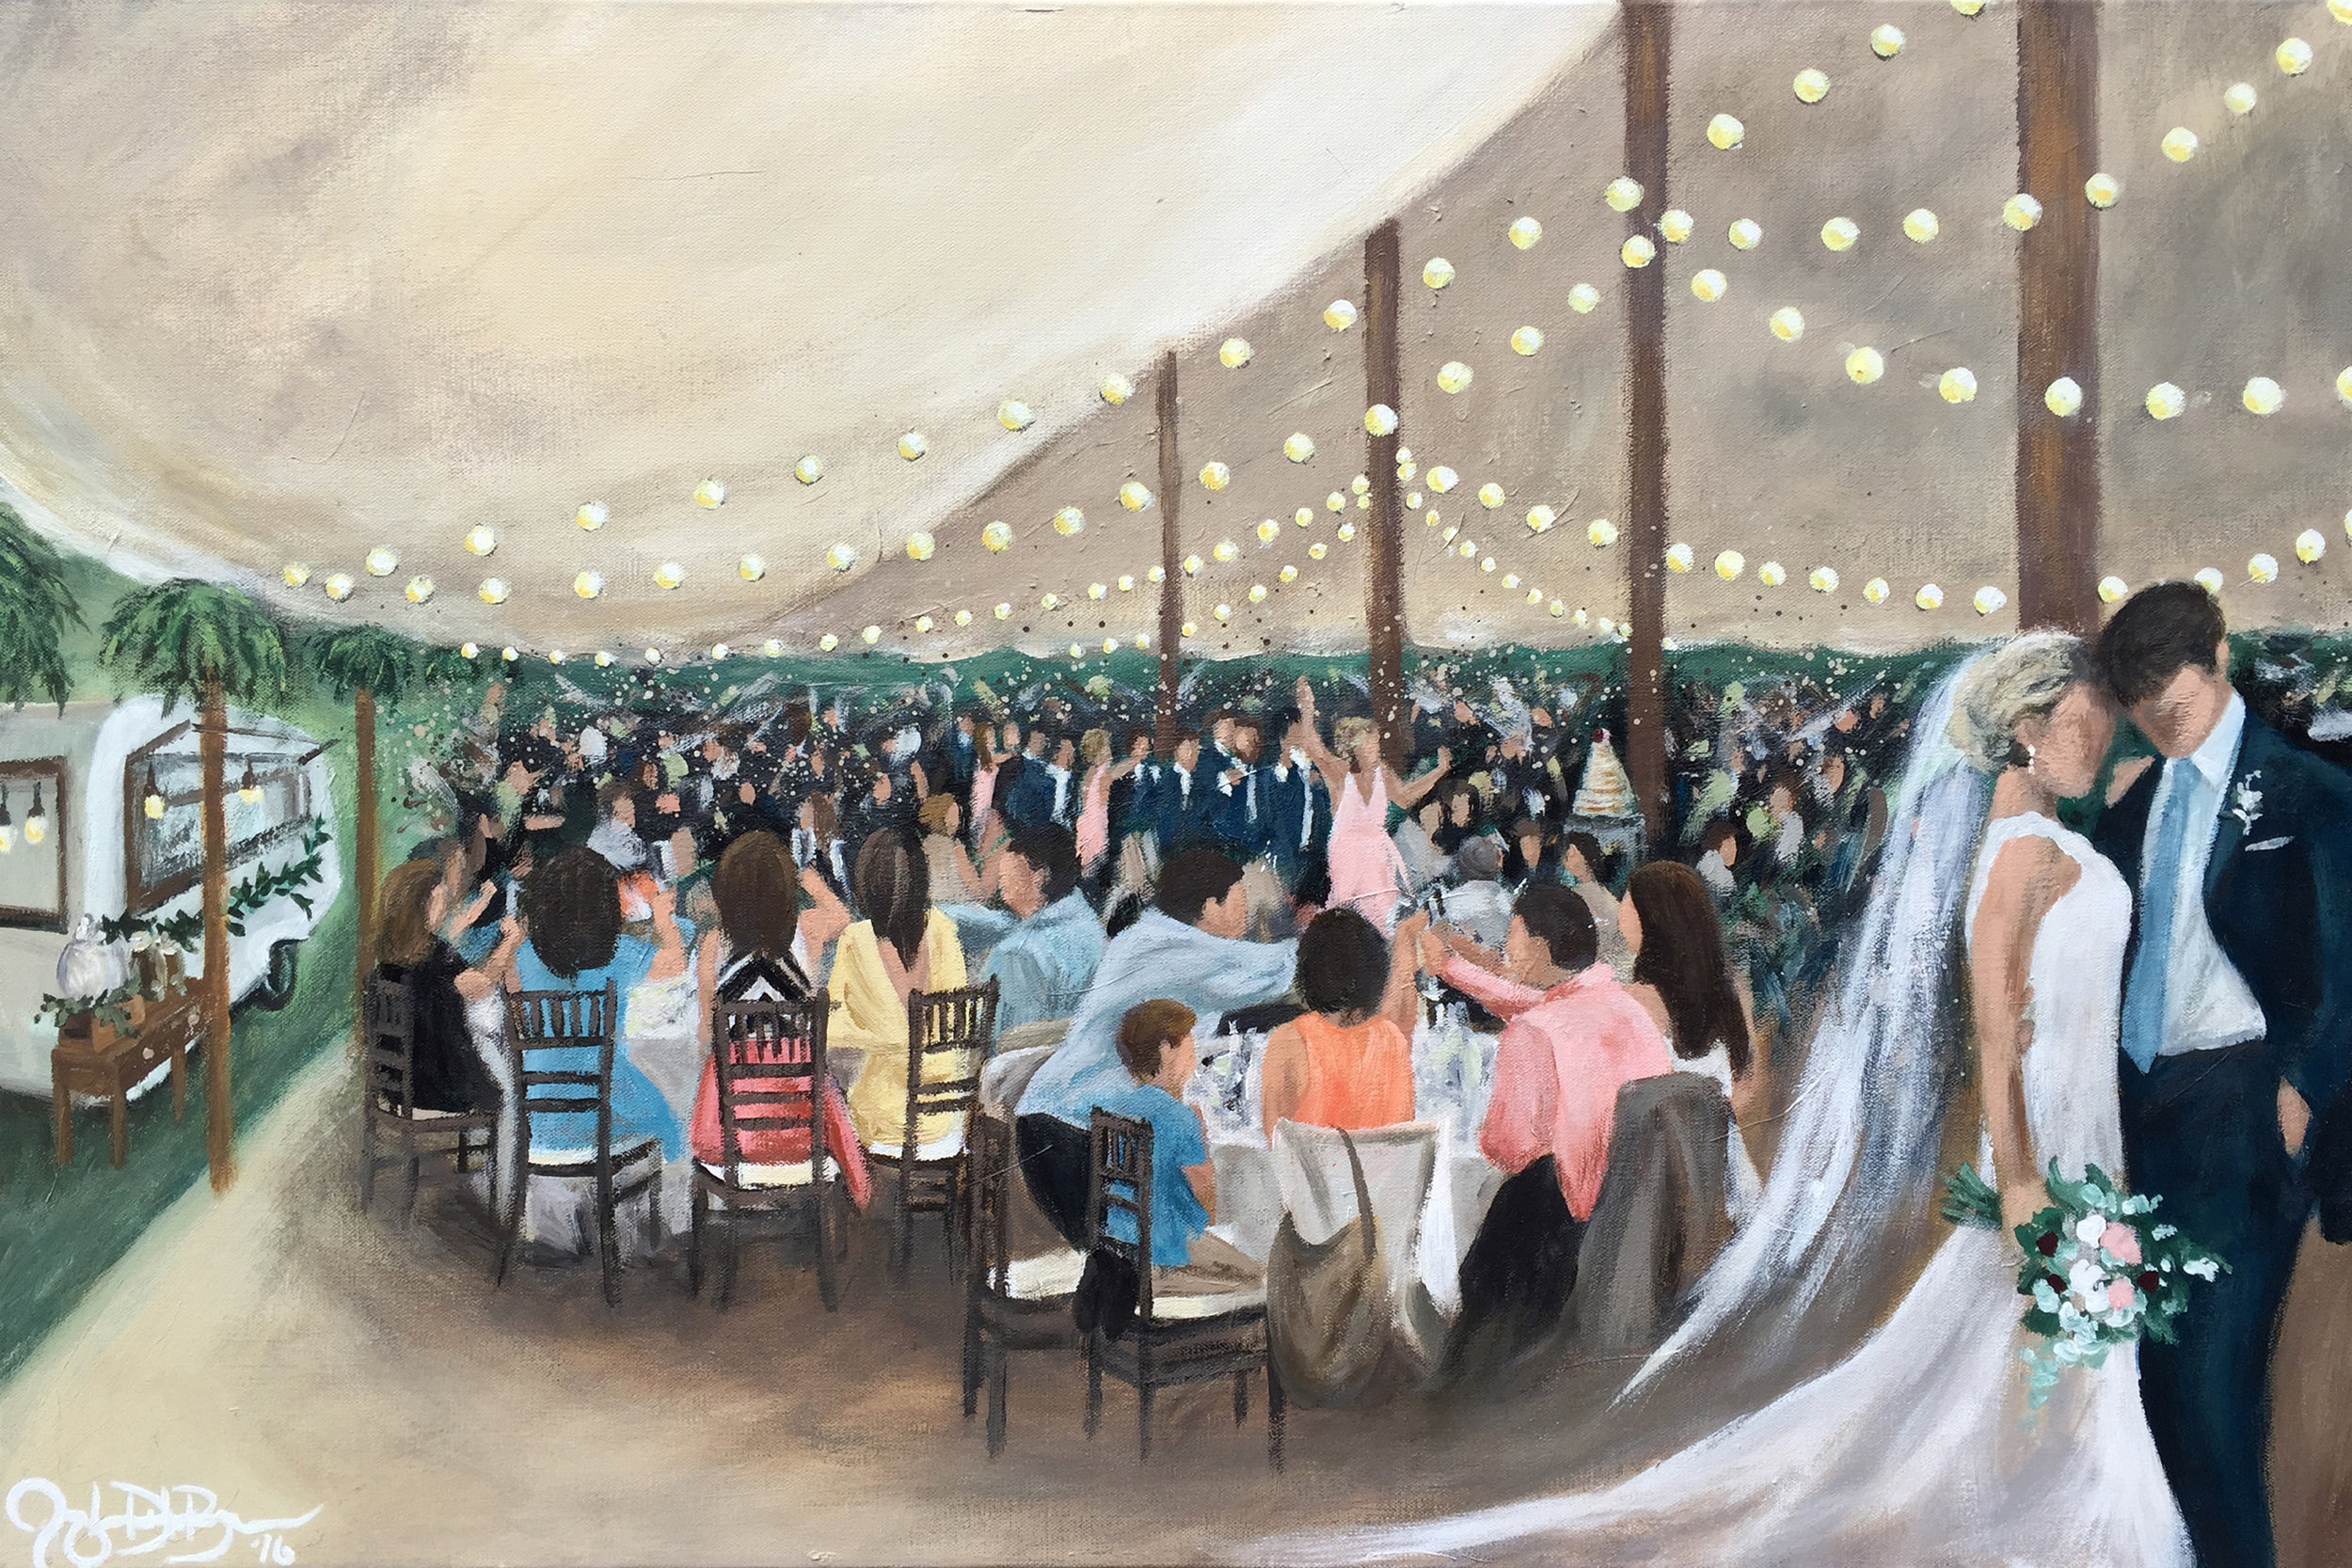 Live Wedding Painting // Jacqueline DelBrocco // Acrylic on 24x36in Canvas // August 2016